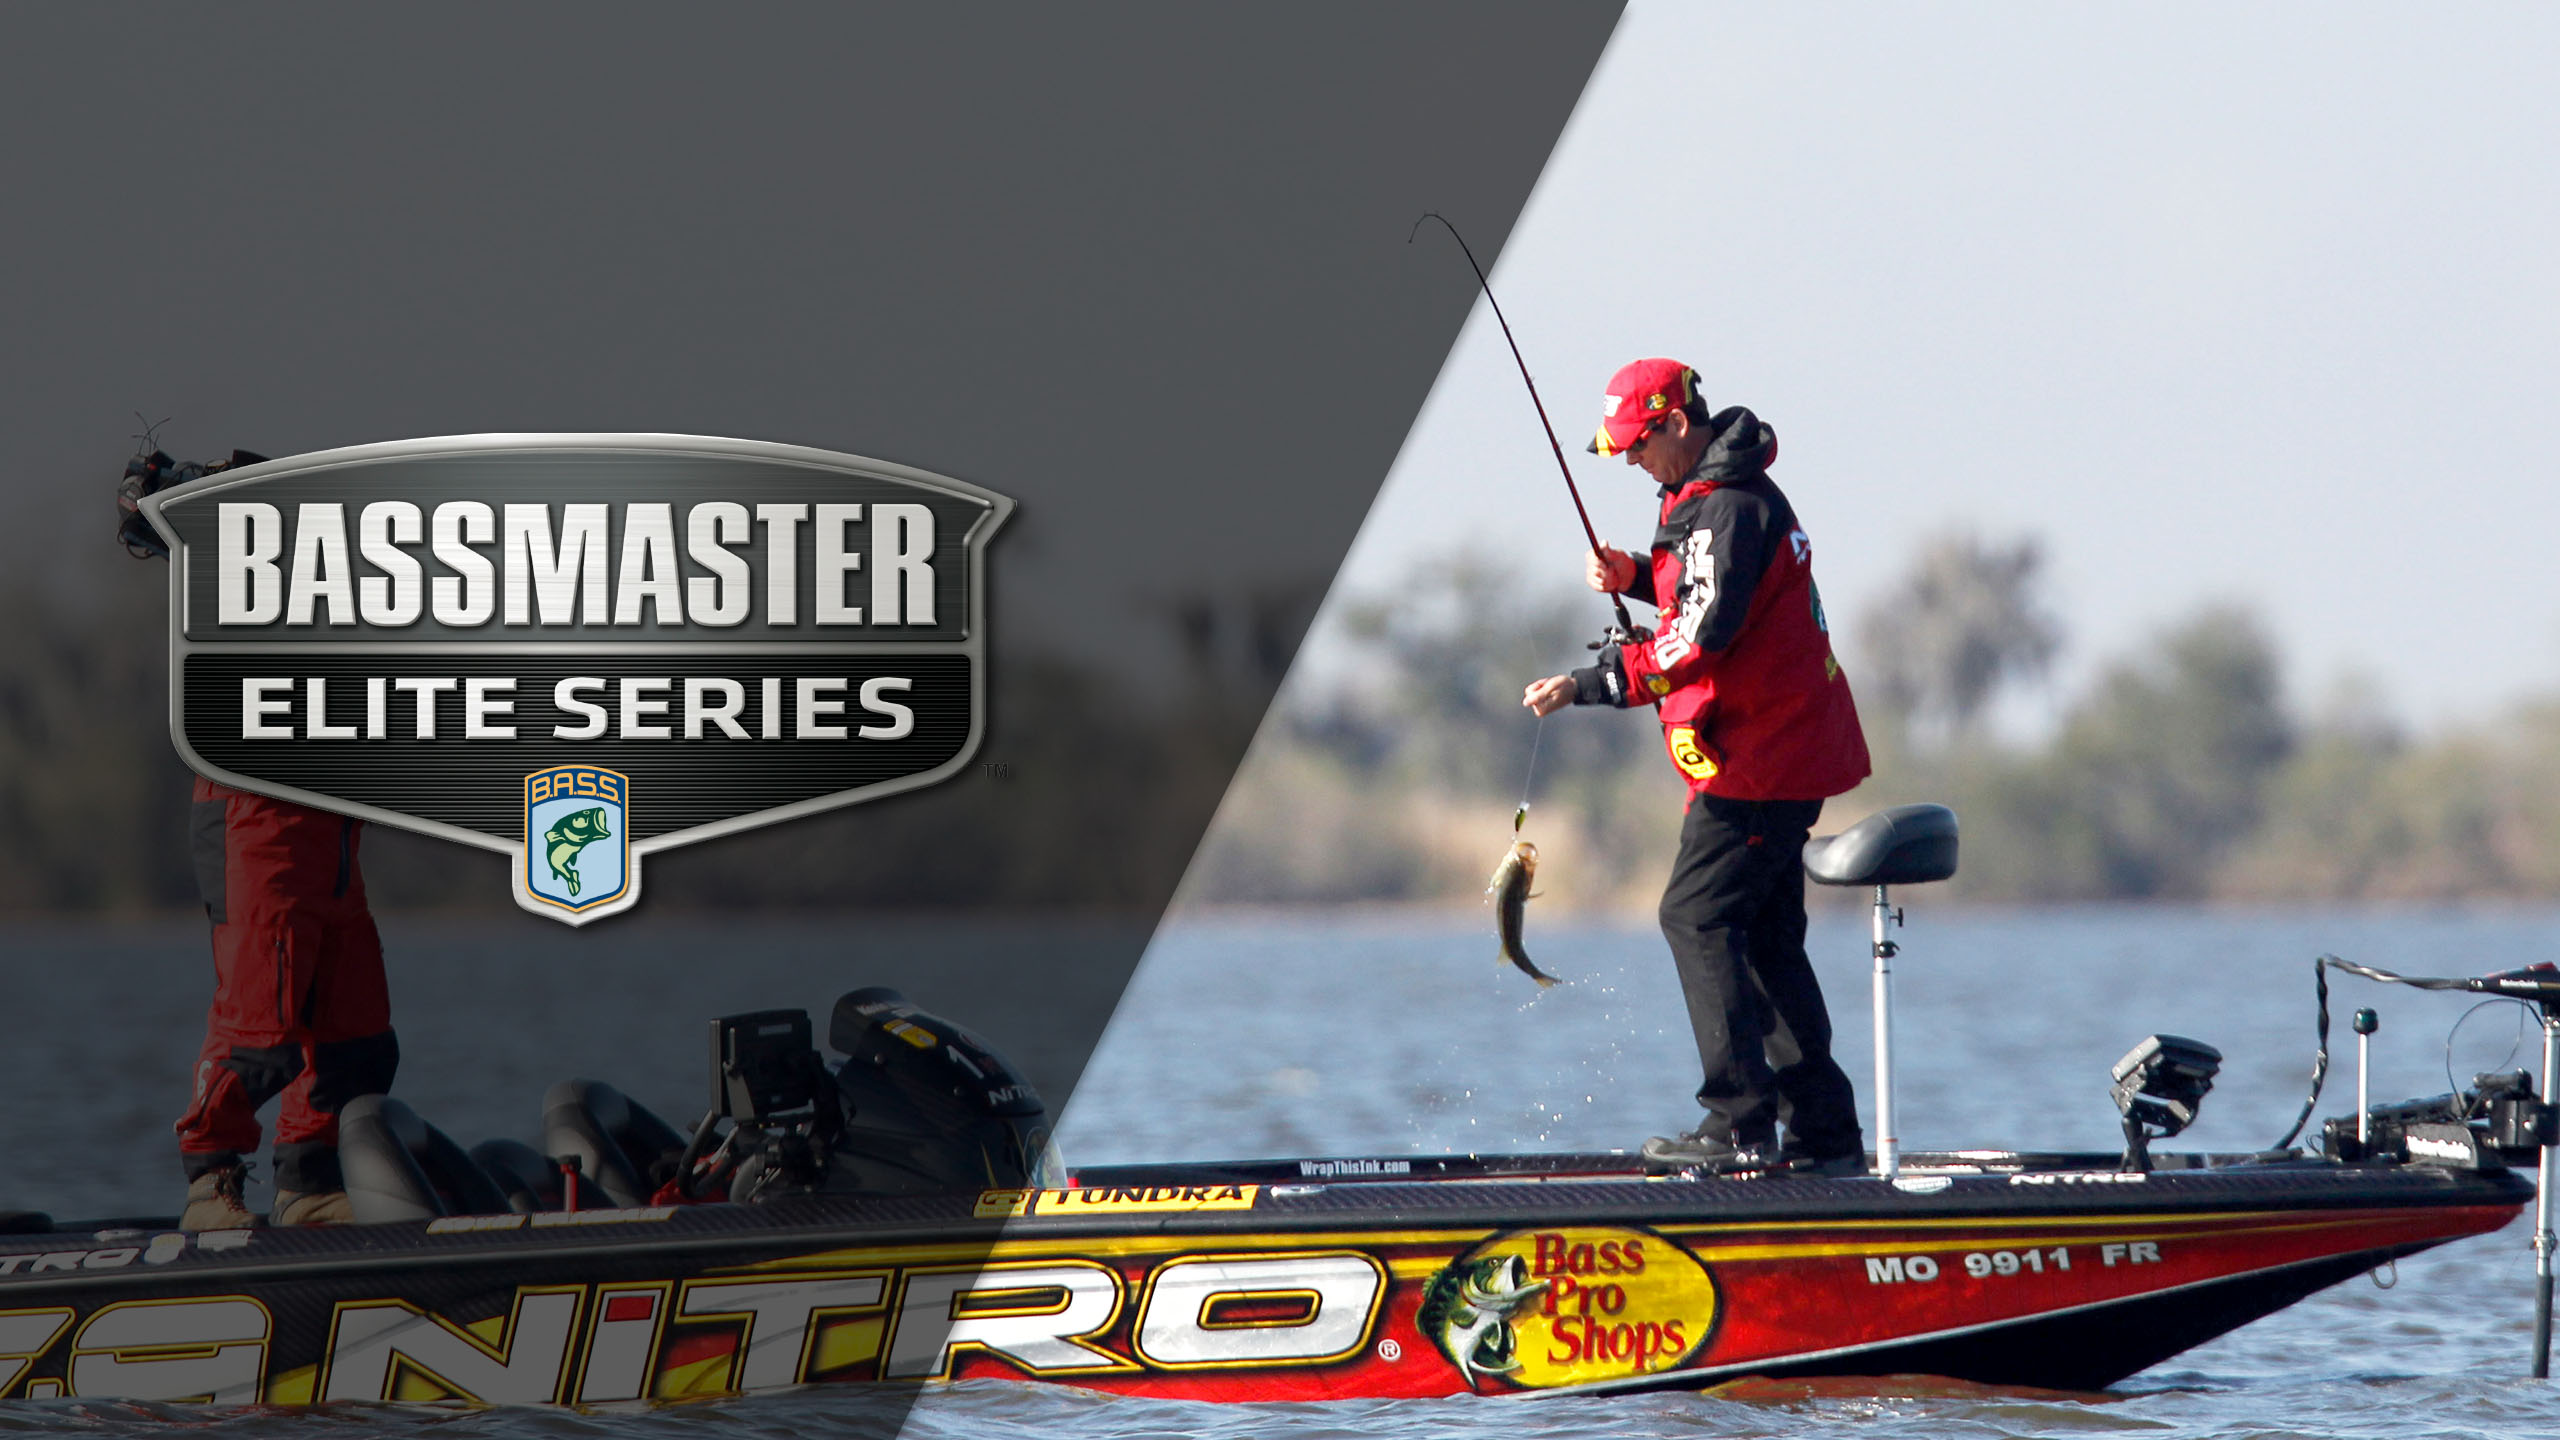 Carhartt Bassmaster National Championship presented by Bass Pro Shops